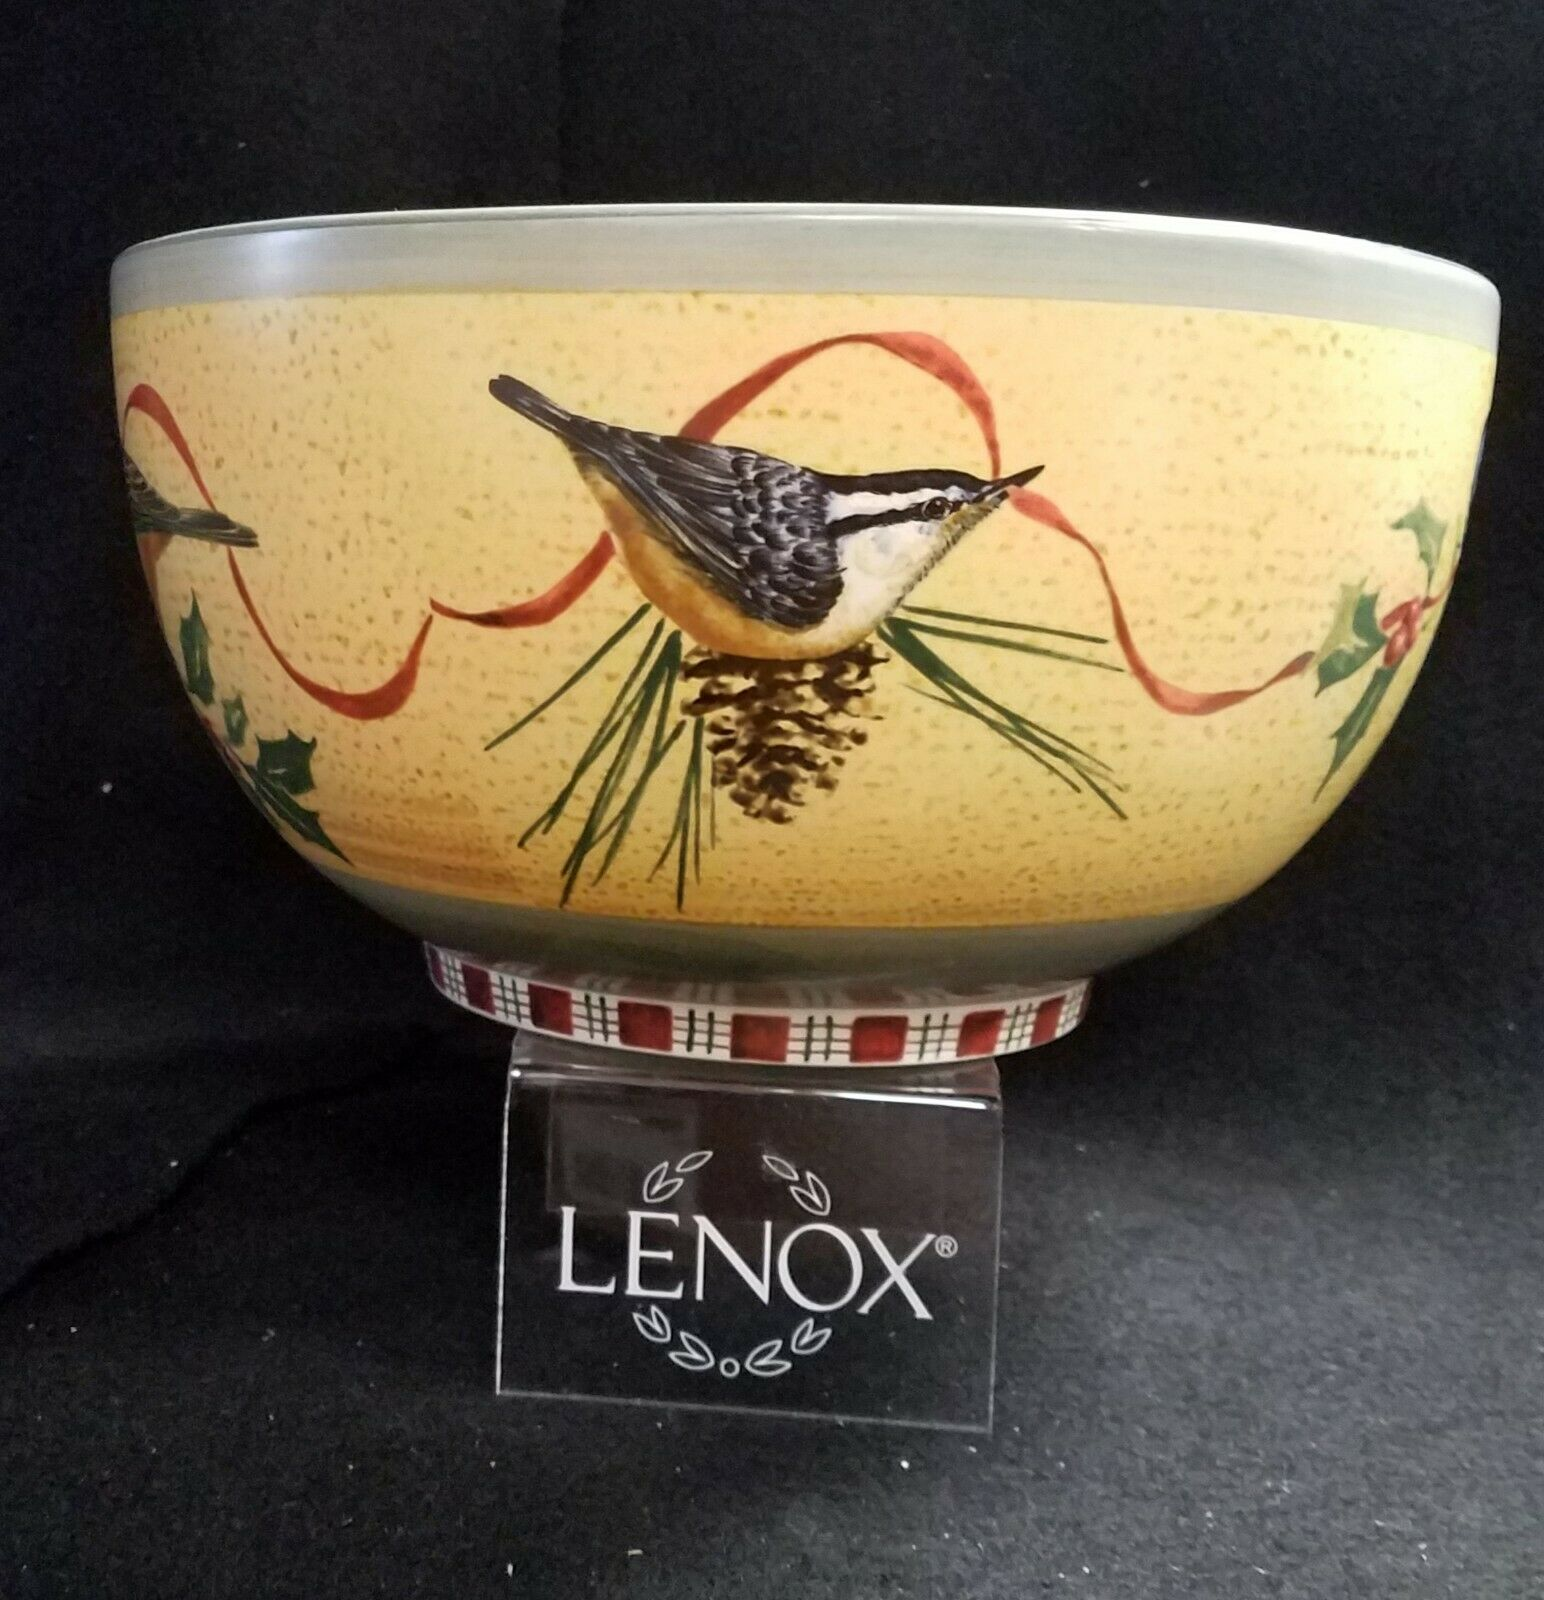 LENOX WINTER GREETINGS Large Serving Bowl 11 Made In Portugal - $169.95